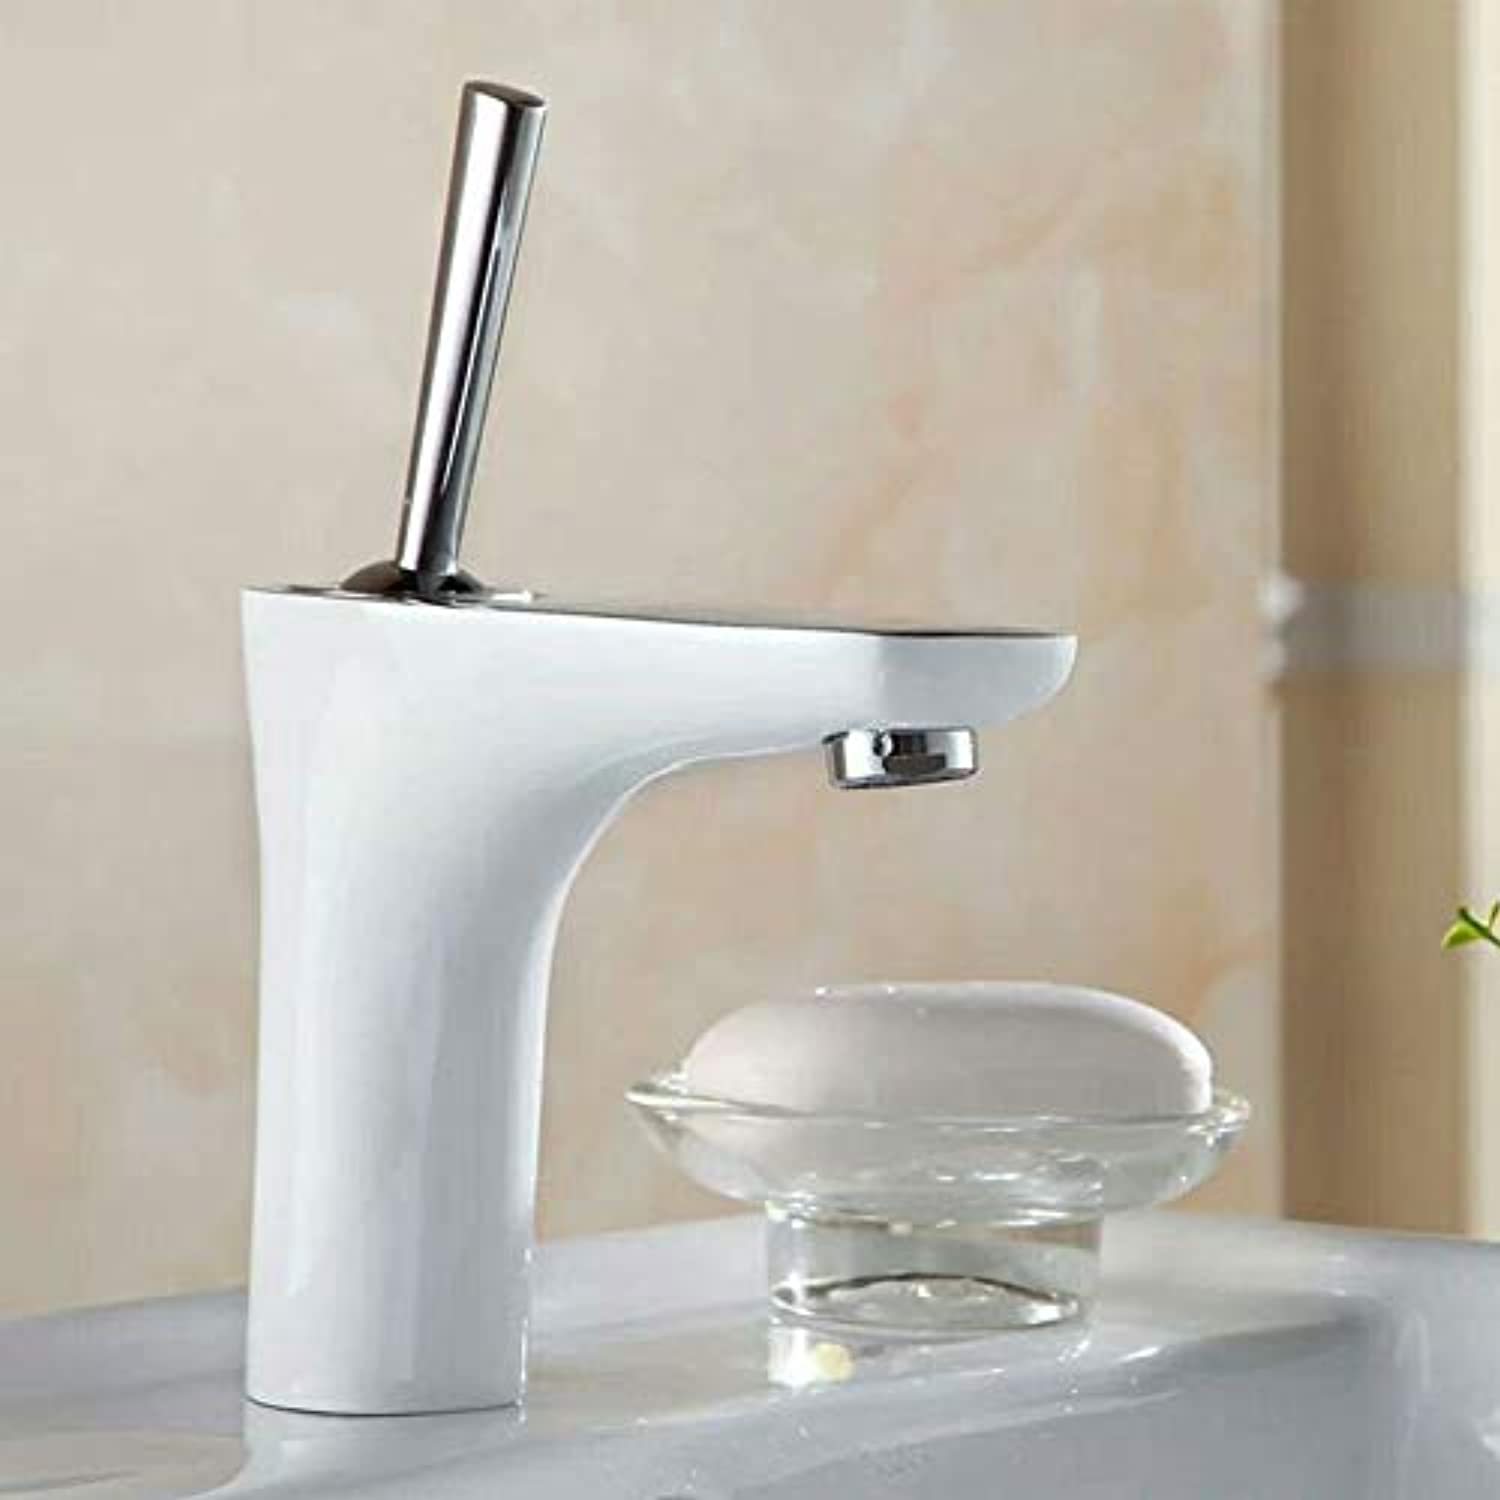 J&LILI Alle Kupferbecken-Faucet, Single hot and Cold Mixer Faucet, Bad Faucet-,b